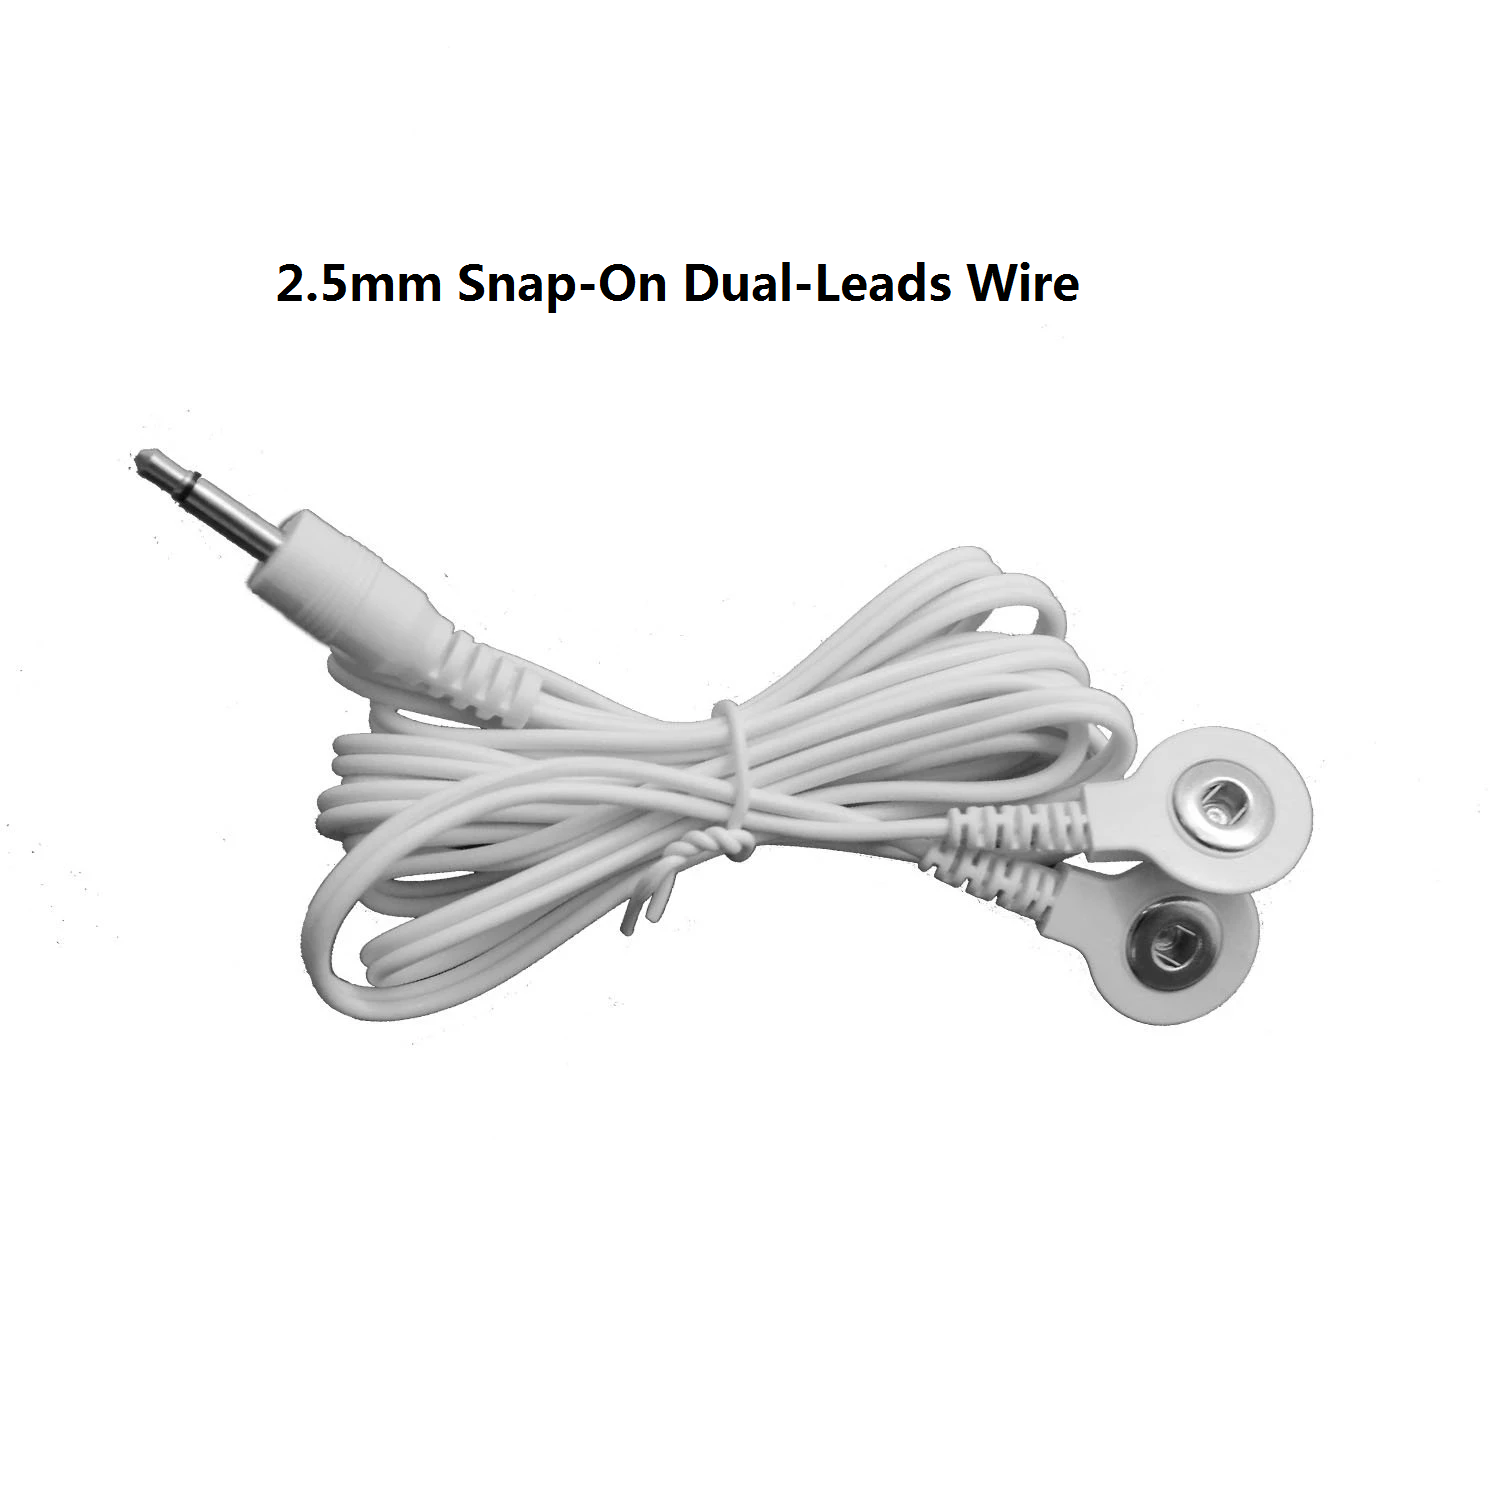 Snap-On Dual-Leads Wire - HealthmateForever